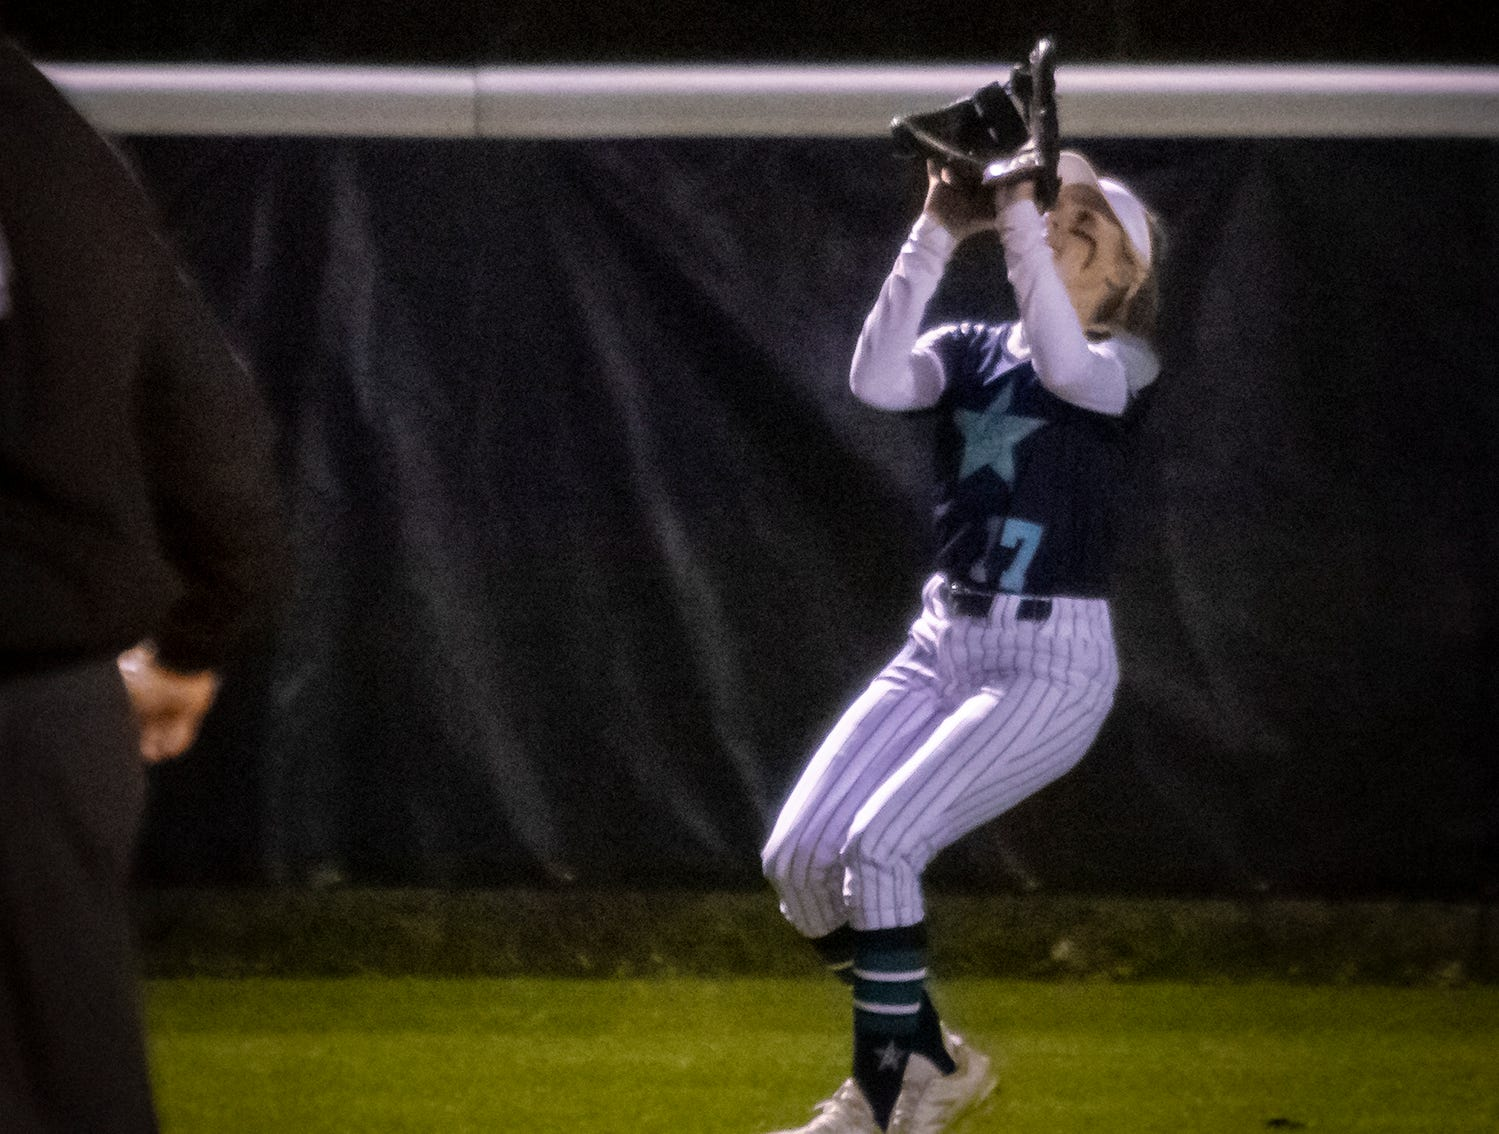 Siegel's Lexi Medlock makes a catch during Monday's win over Smyrna.